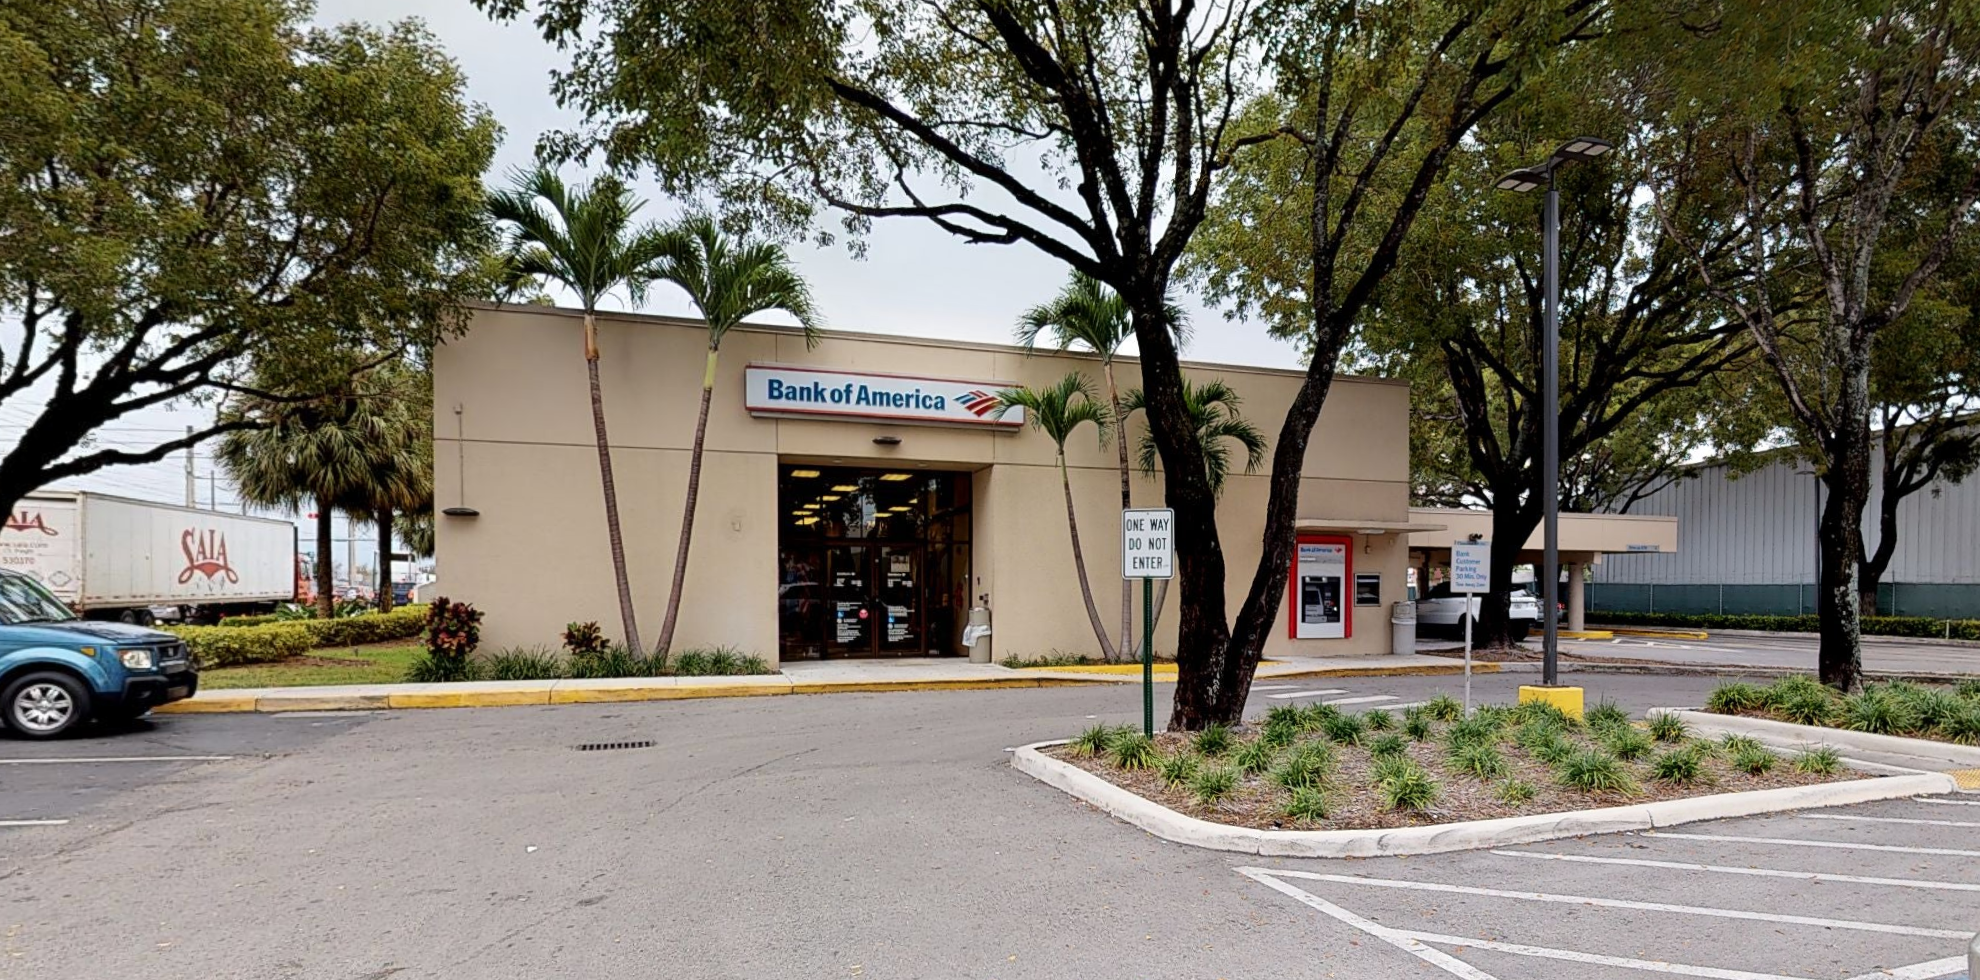 Bank of America financial center with drive-thru ATM | 7400 NW 72nd Ave, Medley, FL 33166